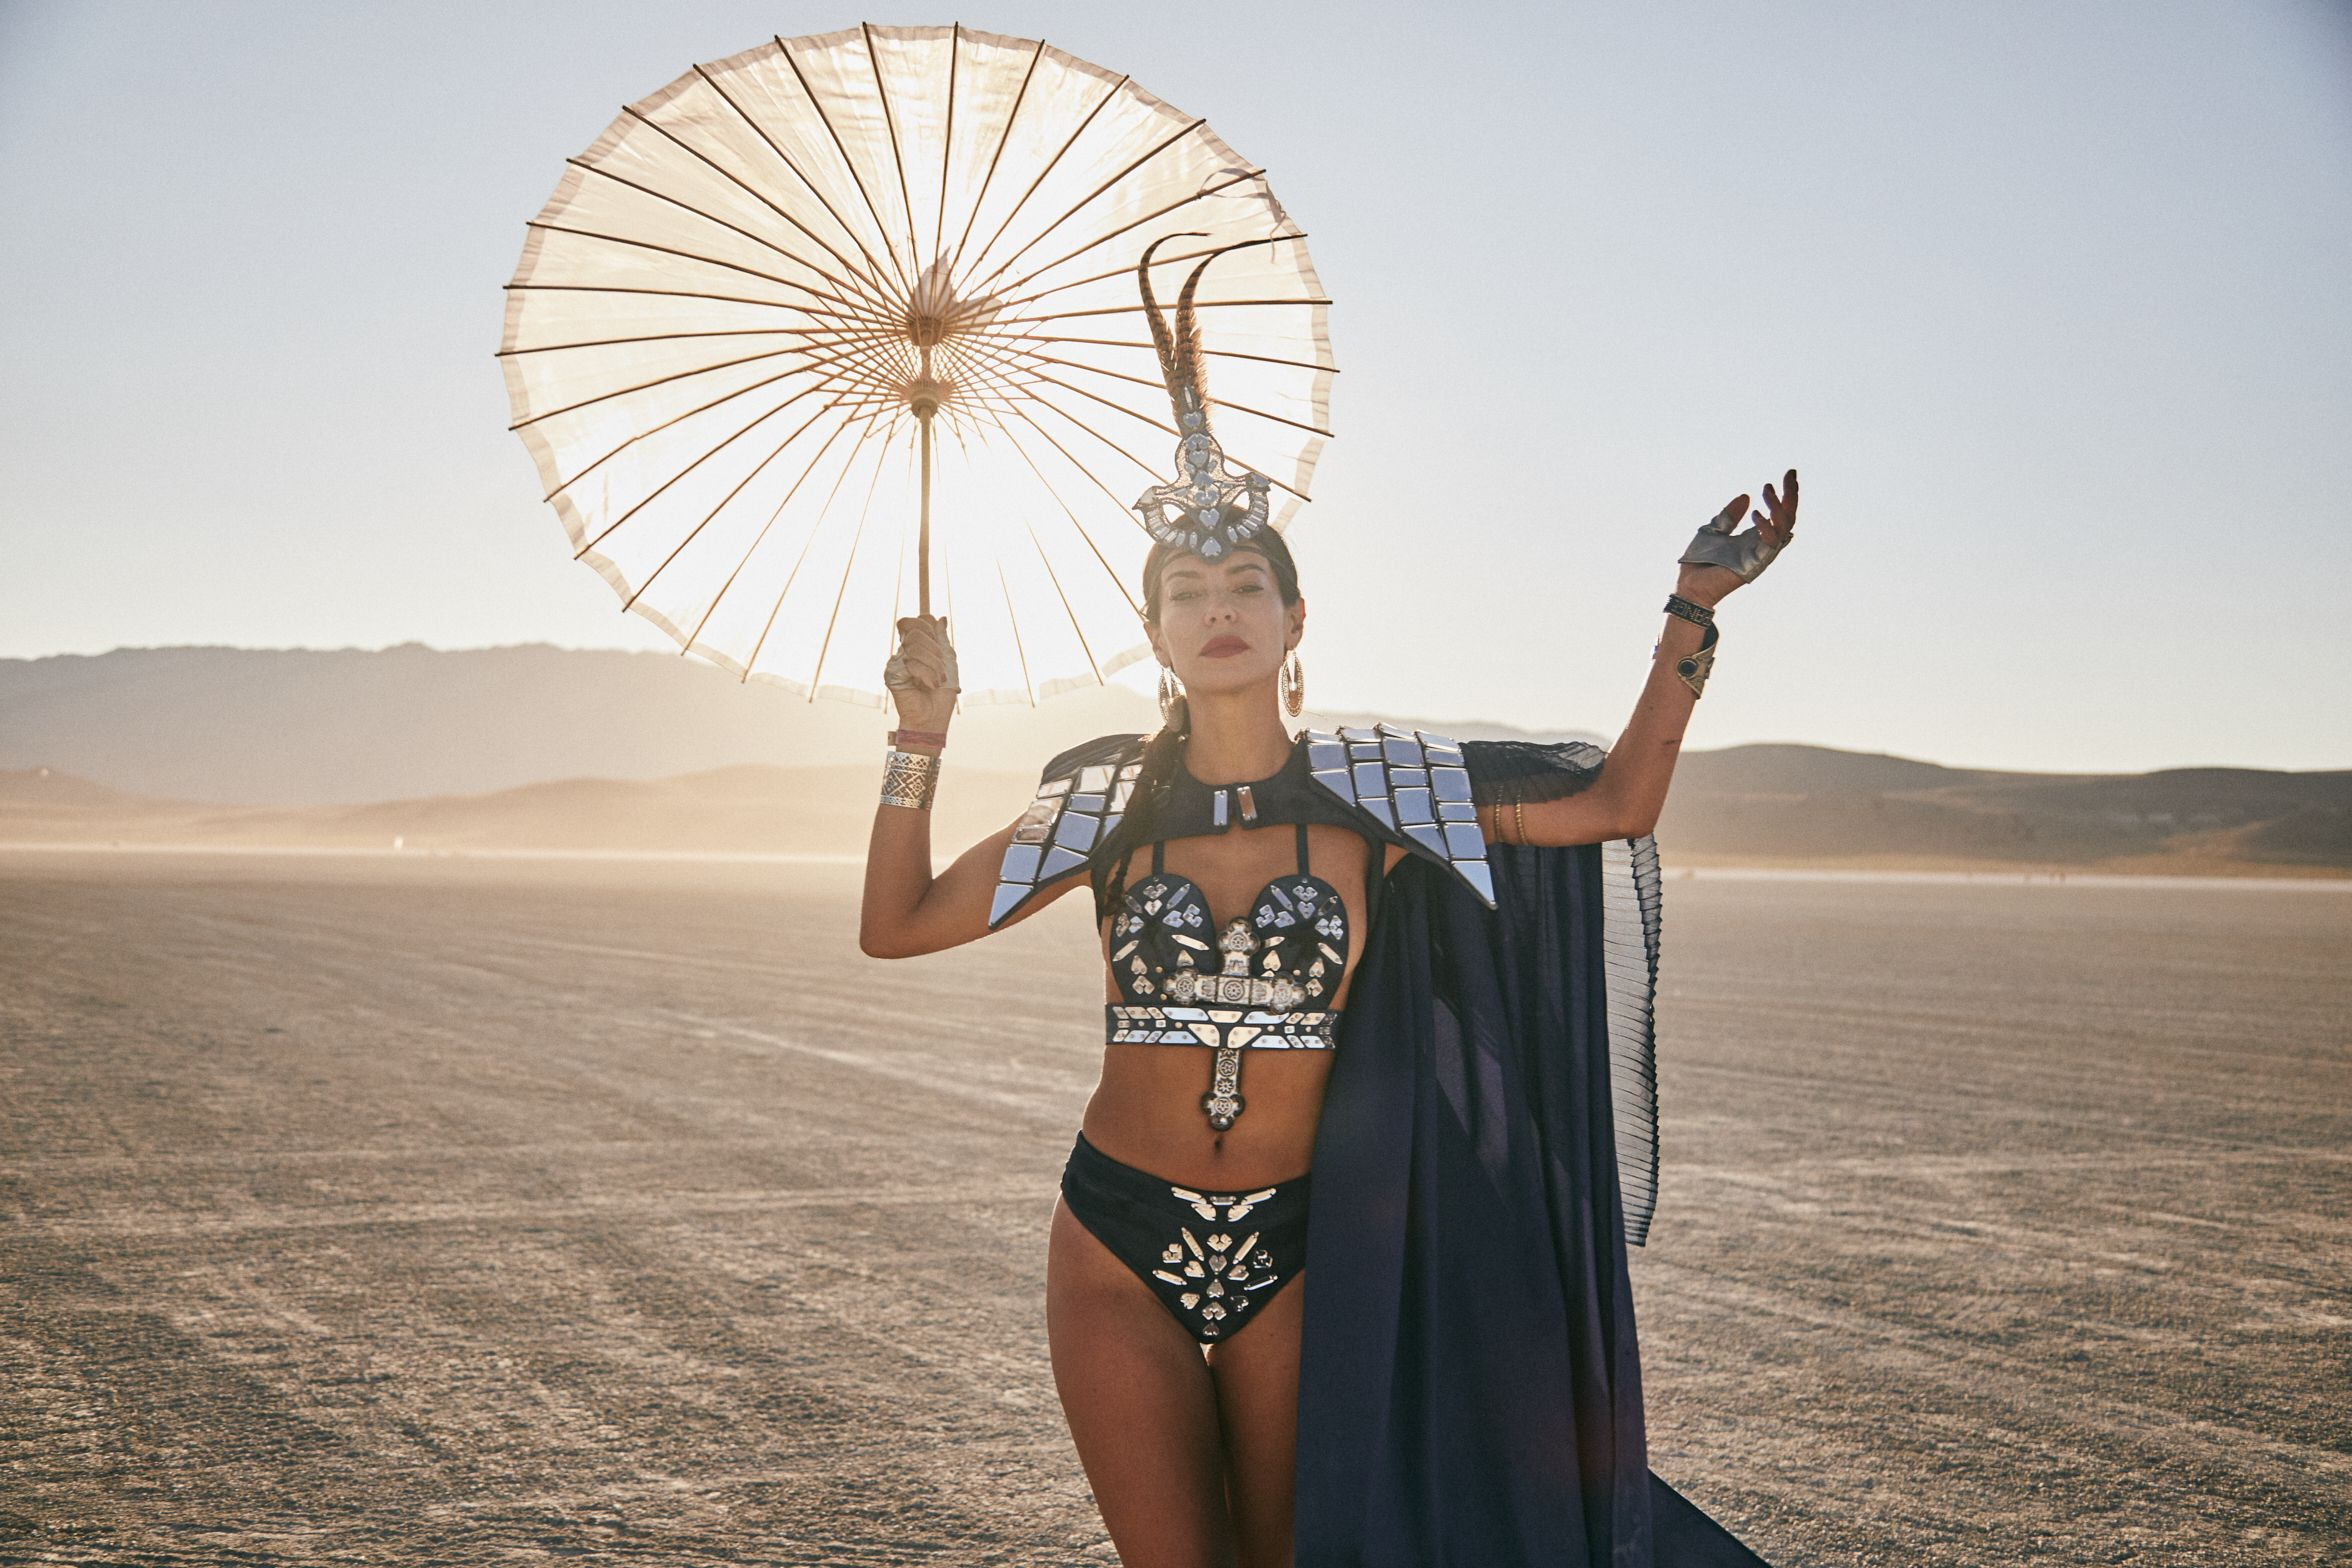 The Most Insane Fashion Looks from Burning Man 2019